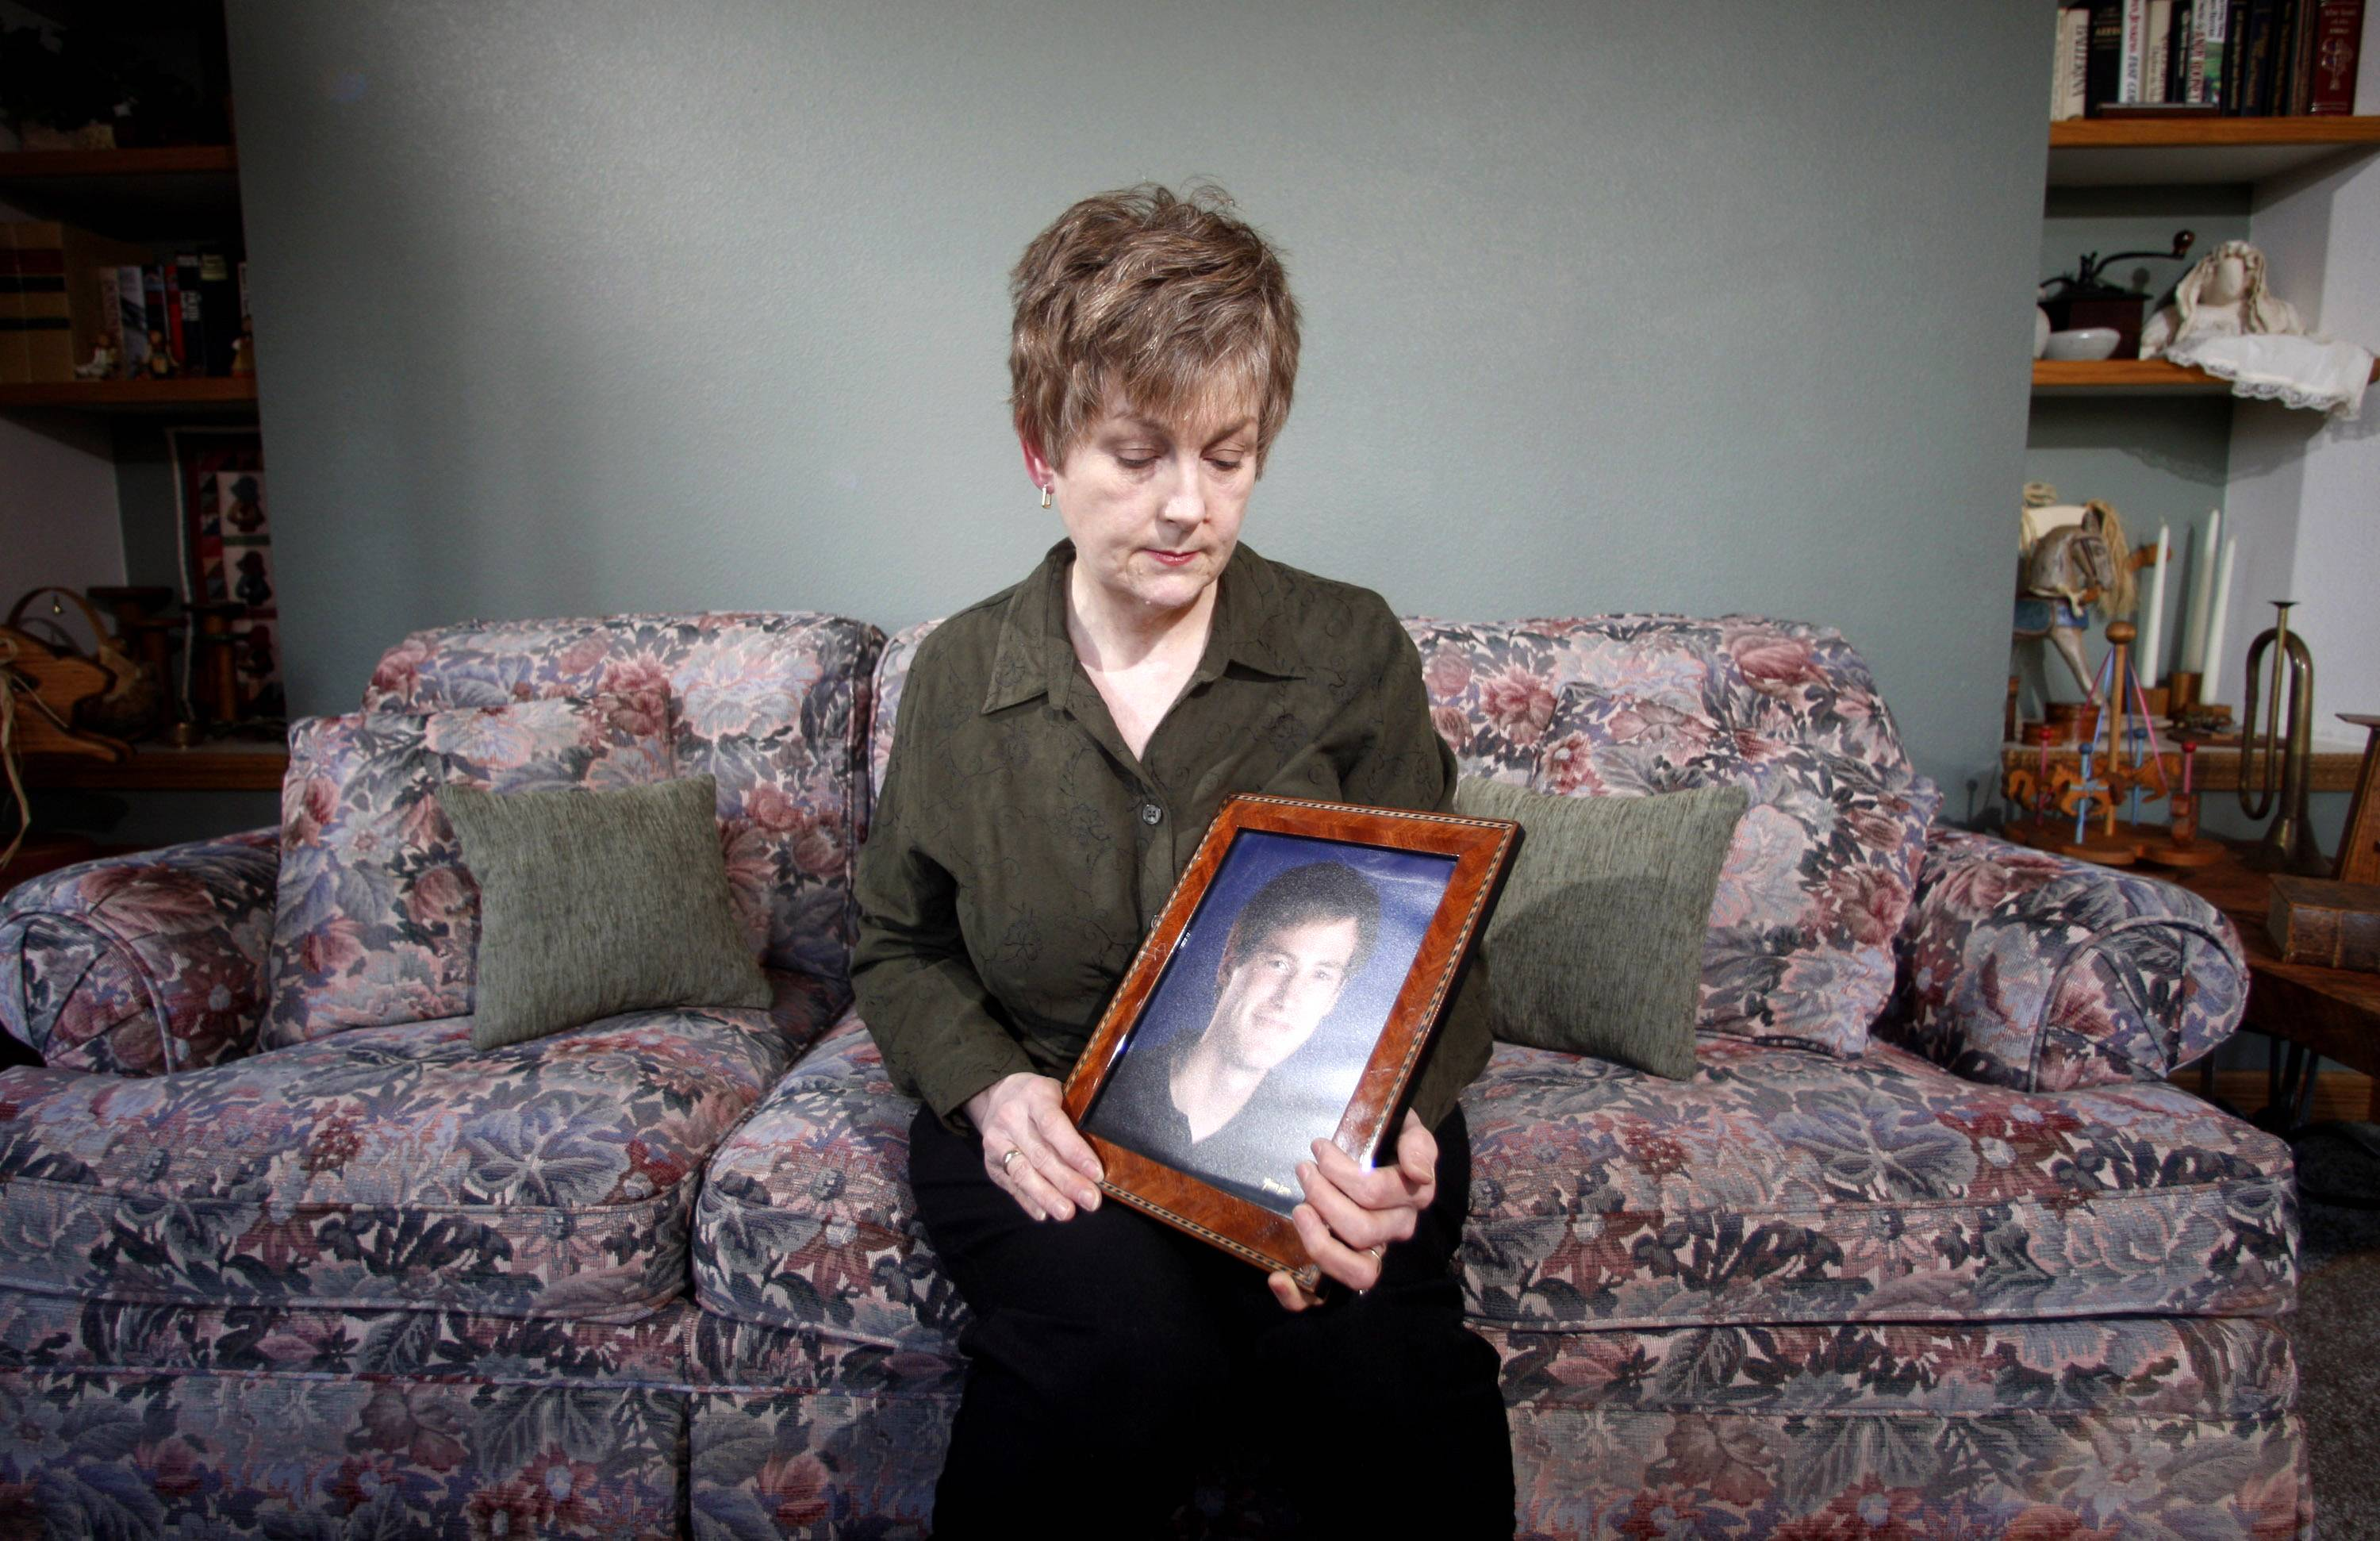 In this Monday, Feb. 27, 2012 file photo, Karen Williams, who sued Facebook for access to her 22-year-old son Loren's account after he died in a 2005 motorcycle accident, looks at a portrait of her son at her home in Beaverton, Ore. The Uniform Law Commission on Wednesday, July 16, 2014 was expected to endorse a plan to automatically give loved ones access to -- but not control of -- all digital accounts, unless otherwise specified.